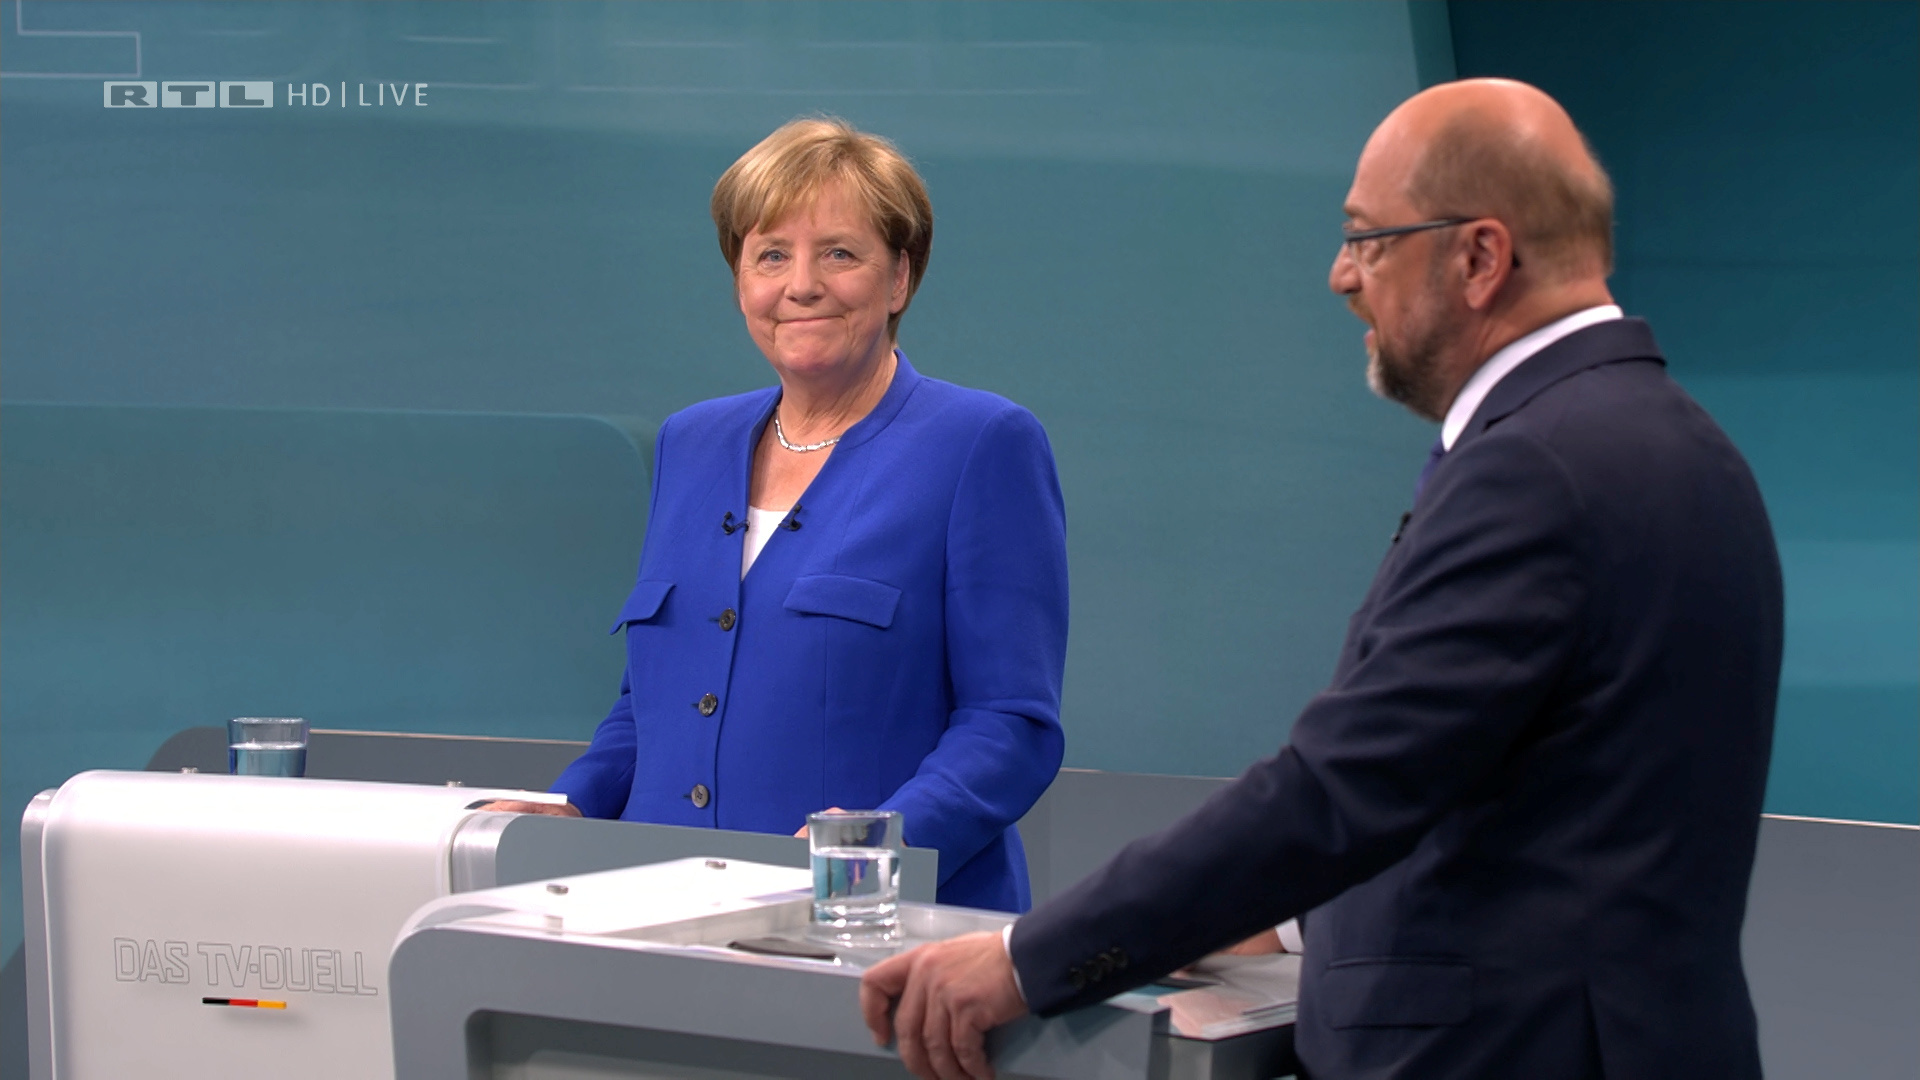 A screen that shows the TV debate between German Chancellor Angela Merkel of the Christian Democratic Union (CDU) and her challenger Germany's Social Democratic Party SPD candidate for chancellor Martin Schulz in Berlin, Germany, September 3, 2017. German voters will take to the polls in a general election on September 24. Mediengruppe RTL Deutschland (MG RTL D)/Handout via REUTERS ATTENTION EDITORS - THIS IMAGE WAS PROVIDED BY A THIRD PARTY. NO RESALES. NO ARCHIVE. - RC1BFE3B1EB0